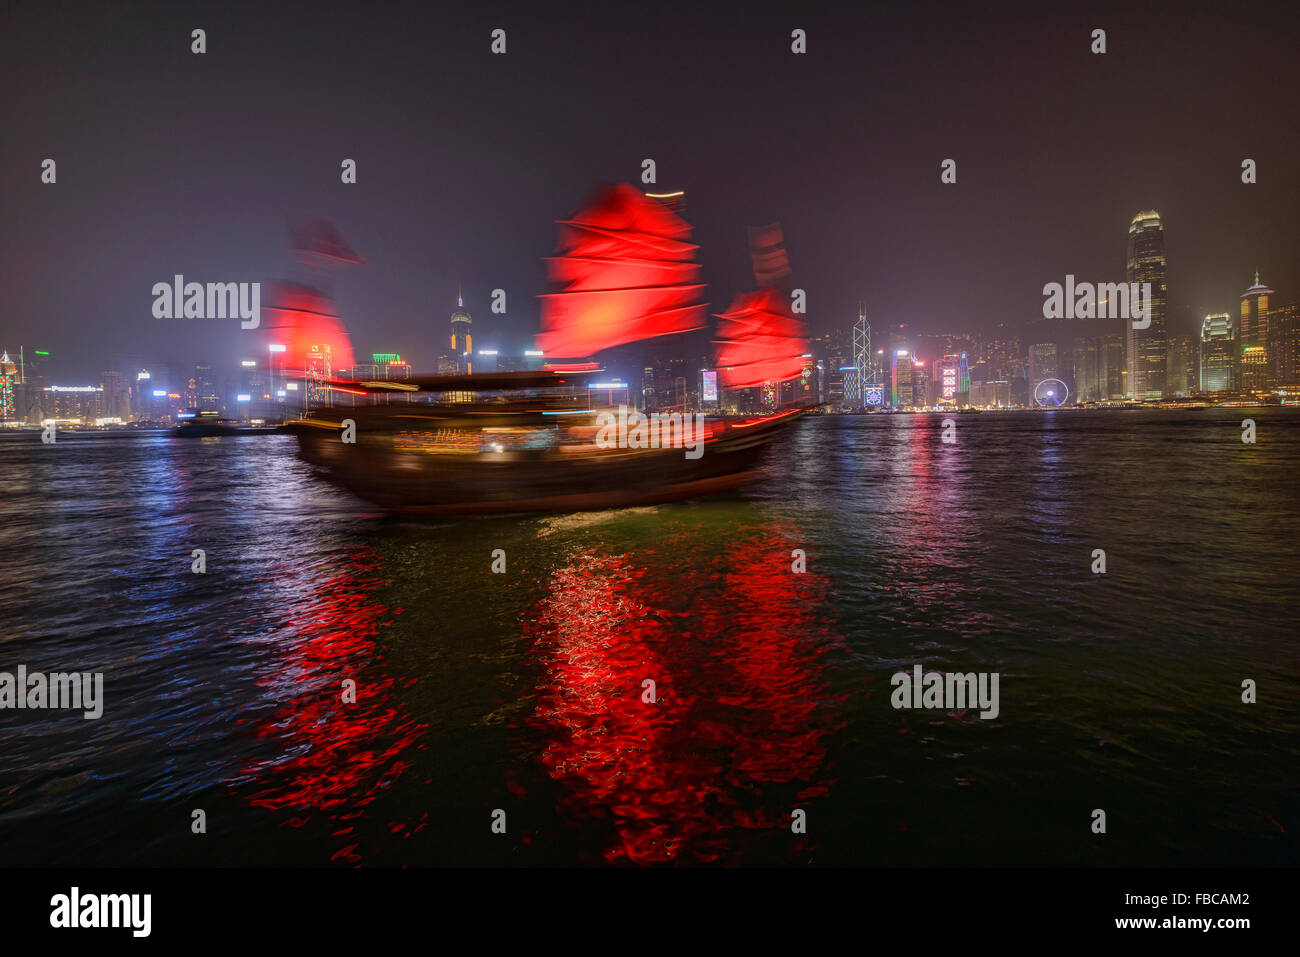 A traditional junk sails through the harbour at night in Hong Kong - Stock Image